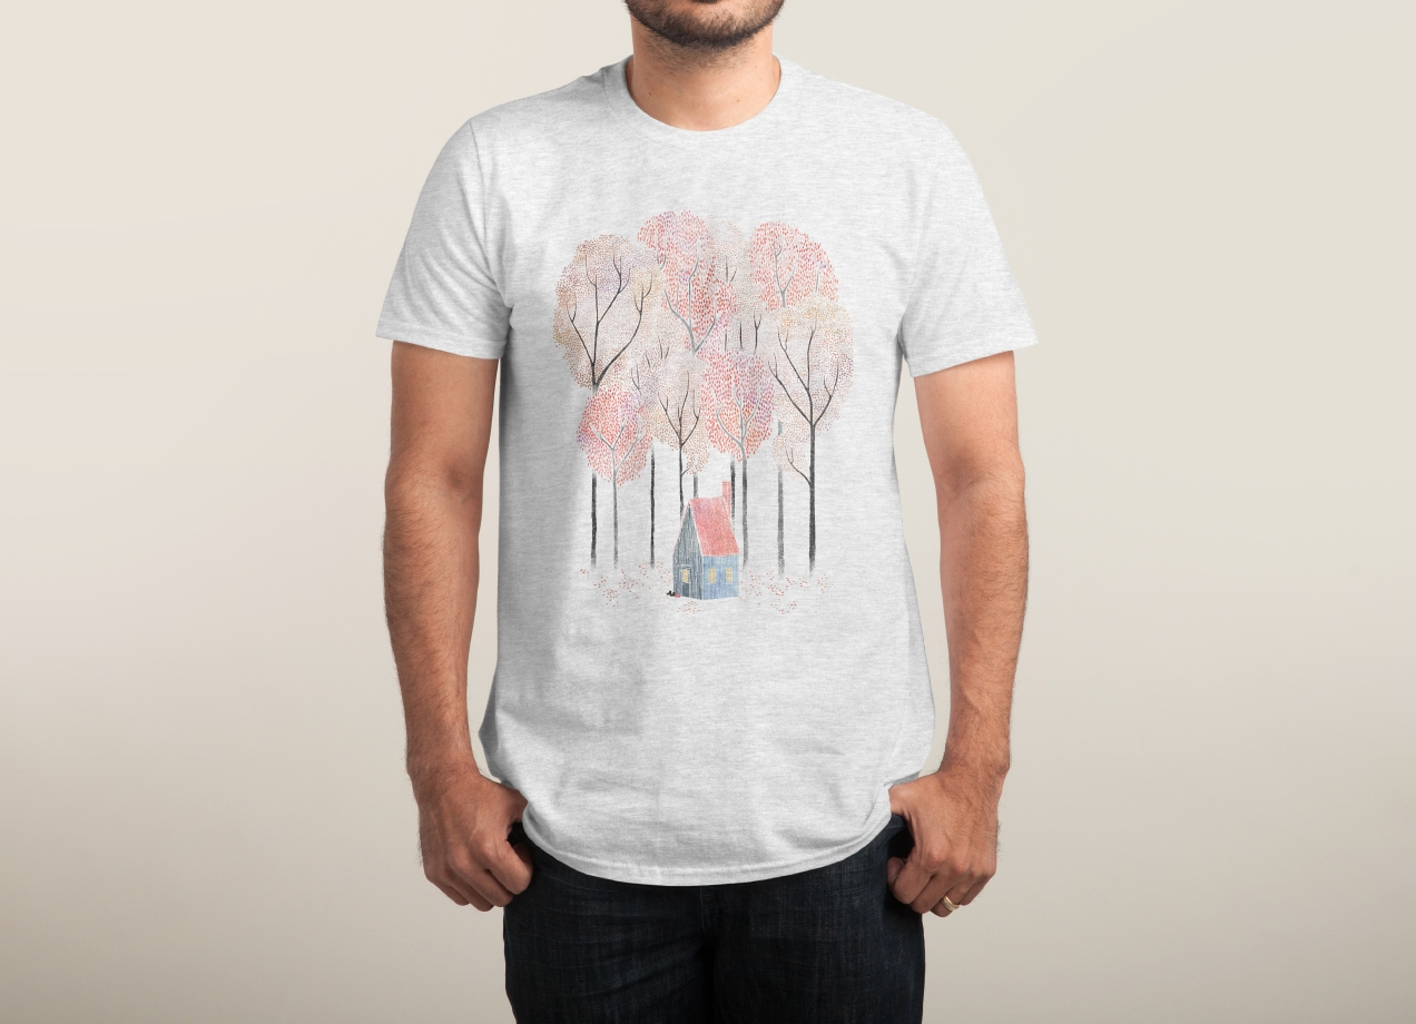 Threadless: Our Cabin